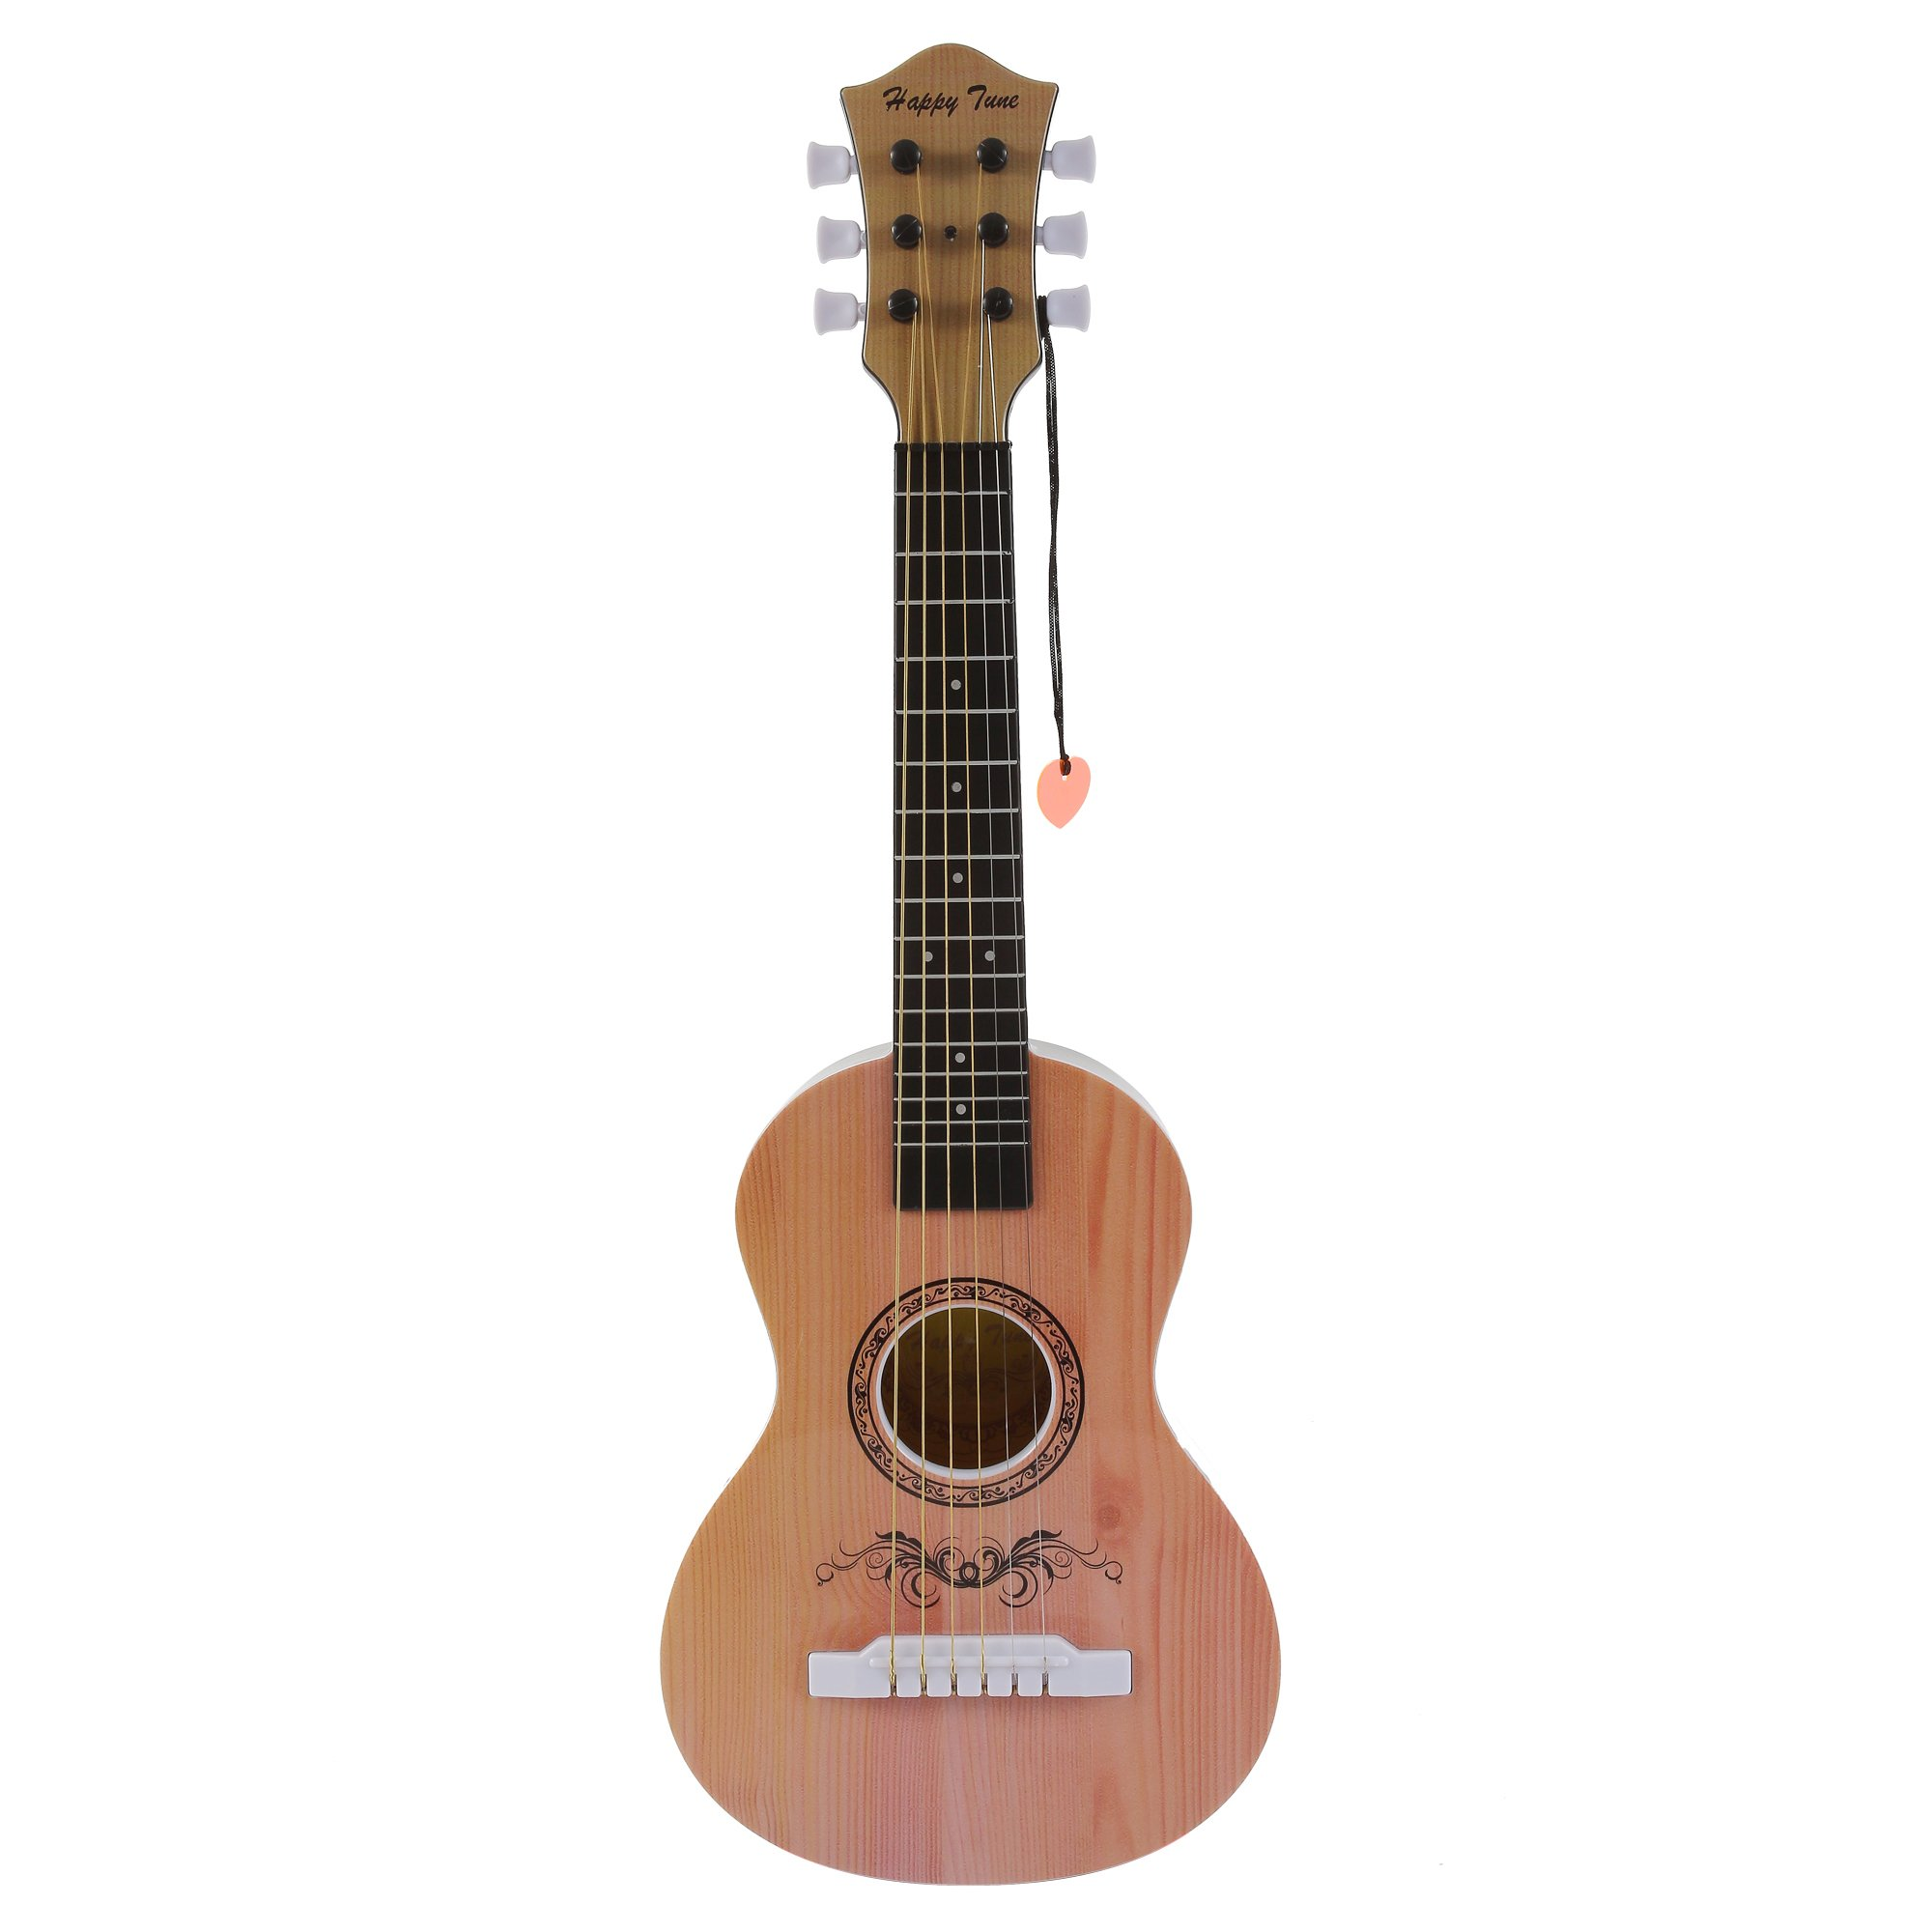 Liberty Imports Happy Tune 6 String Acoustic Guitar Toy for Kids with Vibrant Sounds and Tunable Strings (Natural) by Liberty Imports